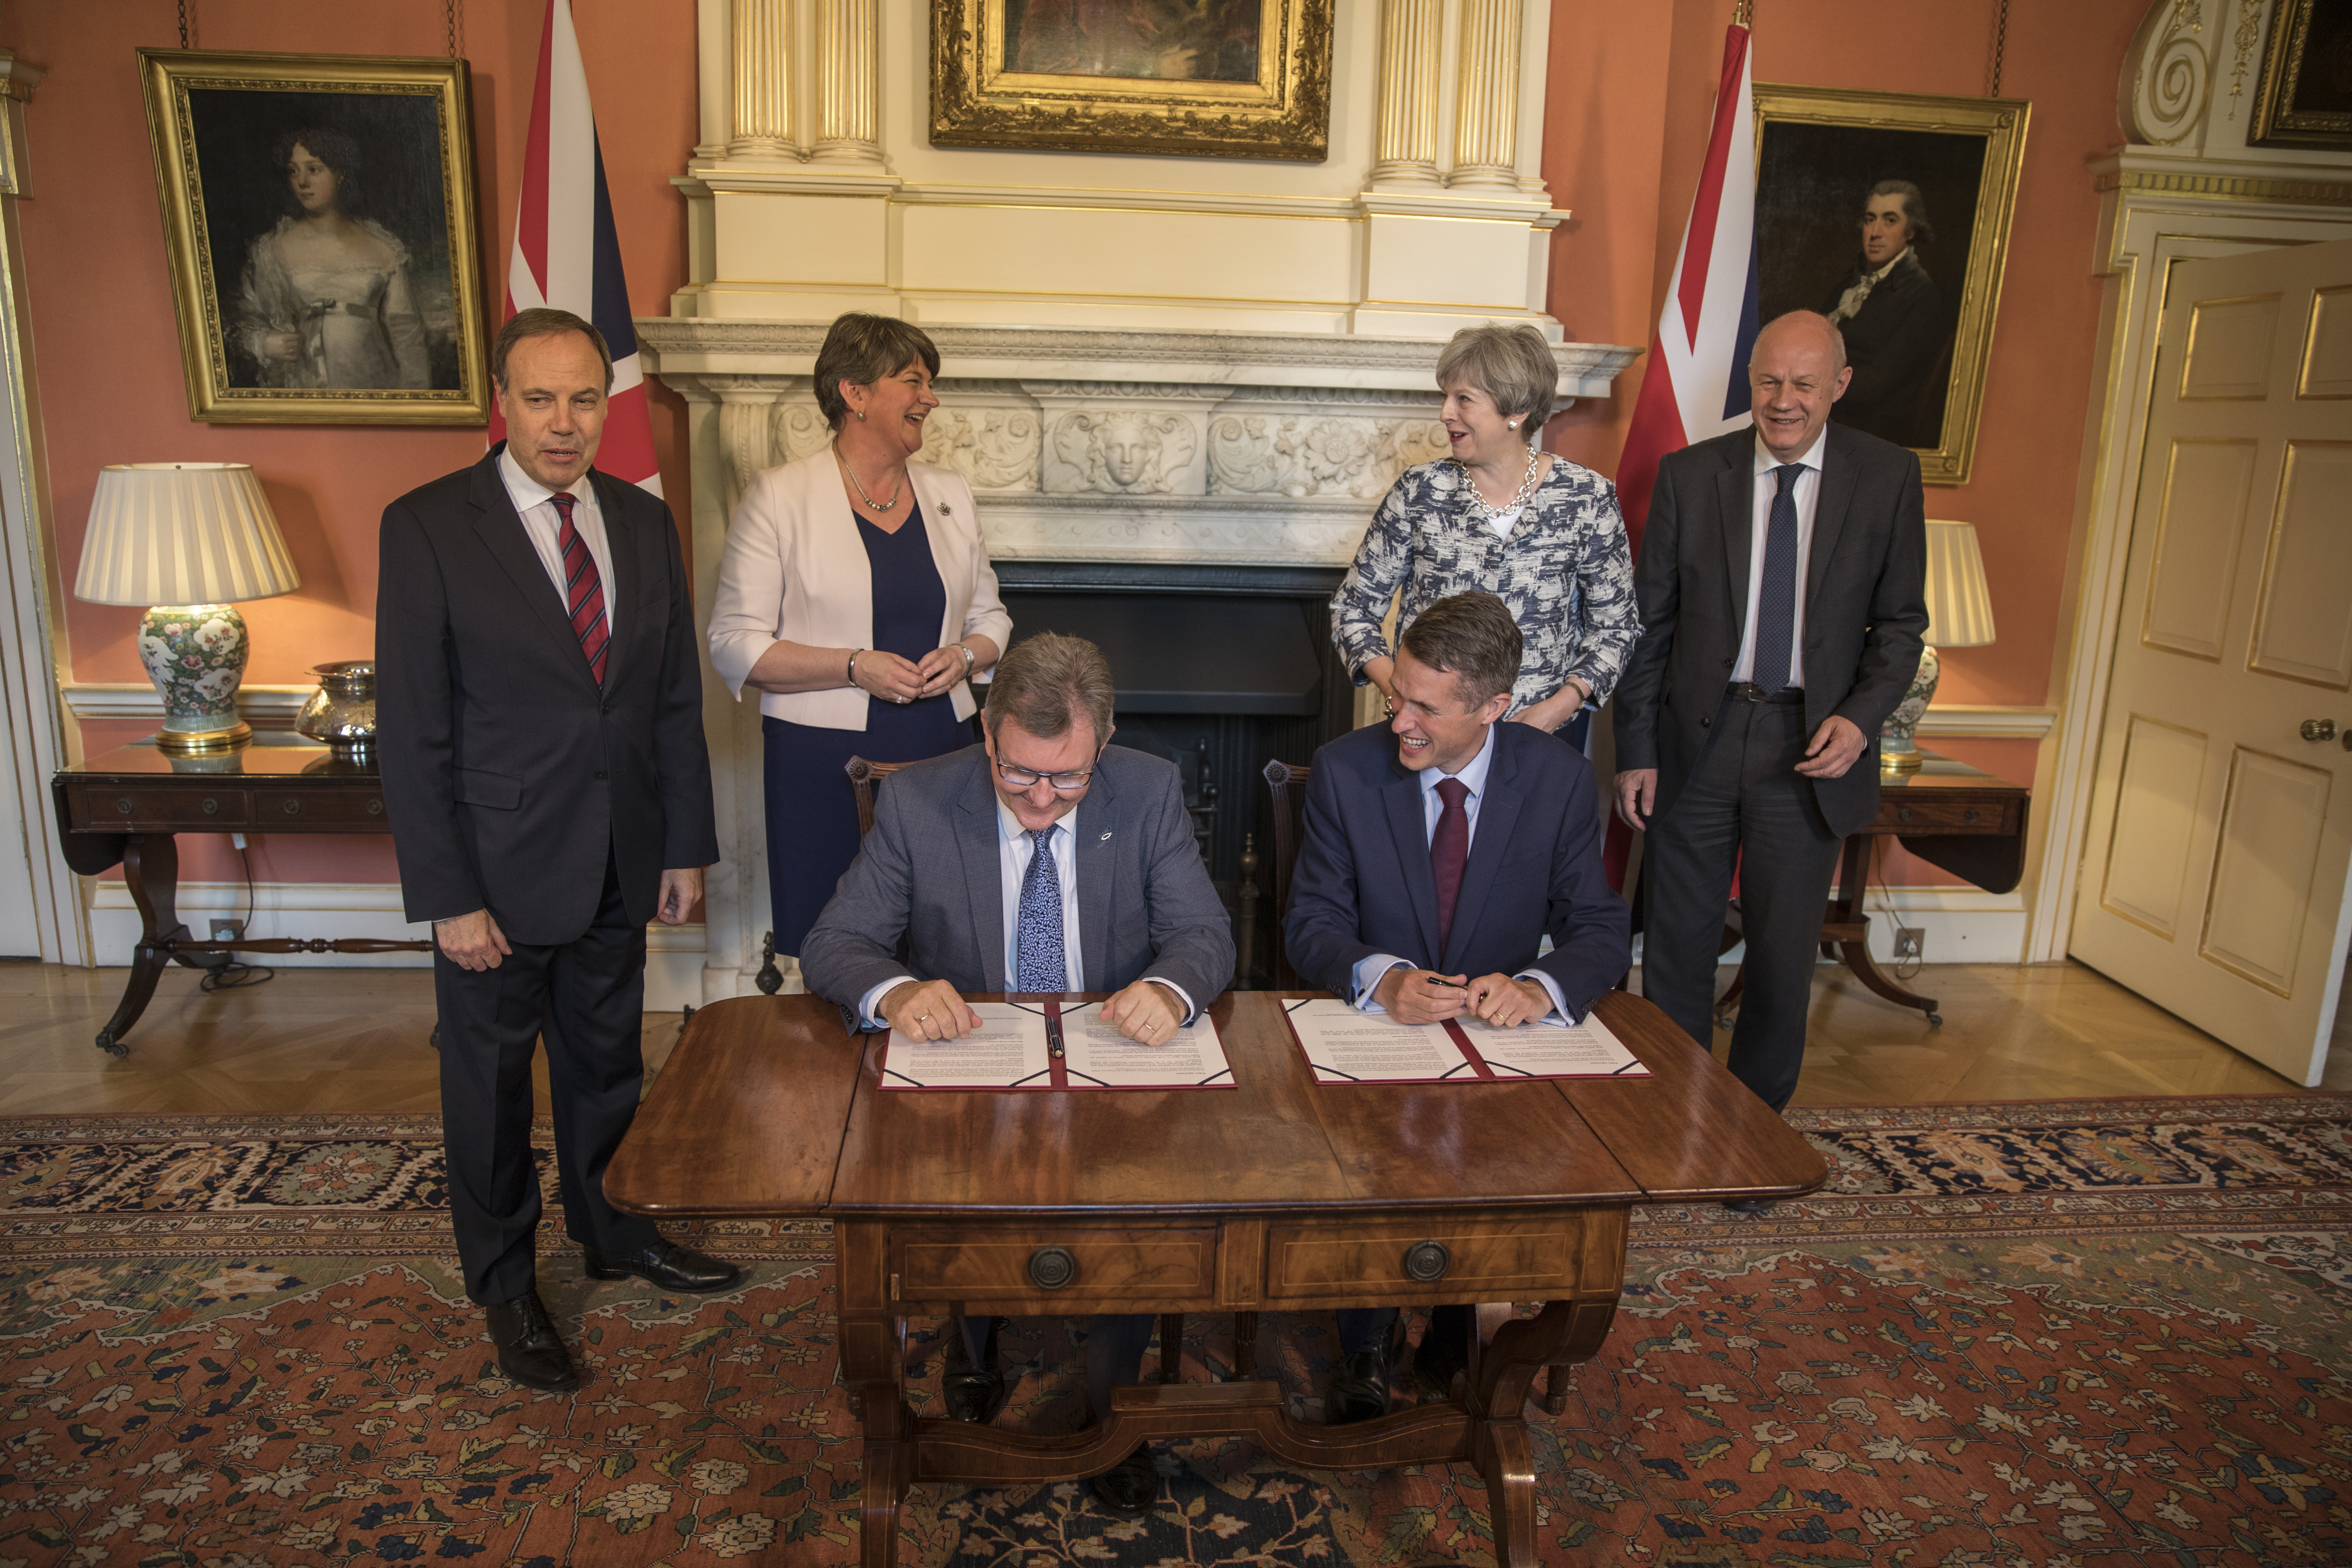 Prime Minister Theresa May (2R) stands with First Secretary of State Damian Green (R), Democratic Unionist Party (DUP) leader Arlene Foster (2L), DUP Deputy Leader Nigel Dodds (L) while DUP MP Jeffrey Donaldson (3L) and Parliamentary Secretary to the Treasury, and Chief Whip, Gavin Williamson sit and sign paperwork inside 10 Downing Street on June 26, 2017 in London, England.